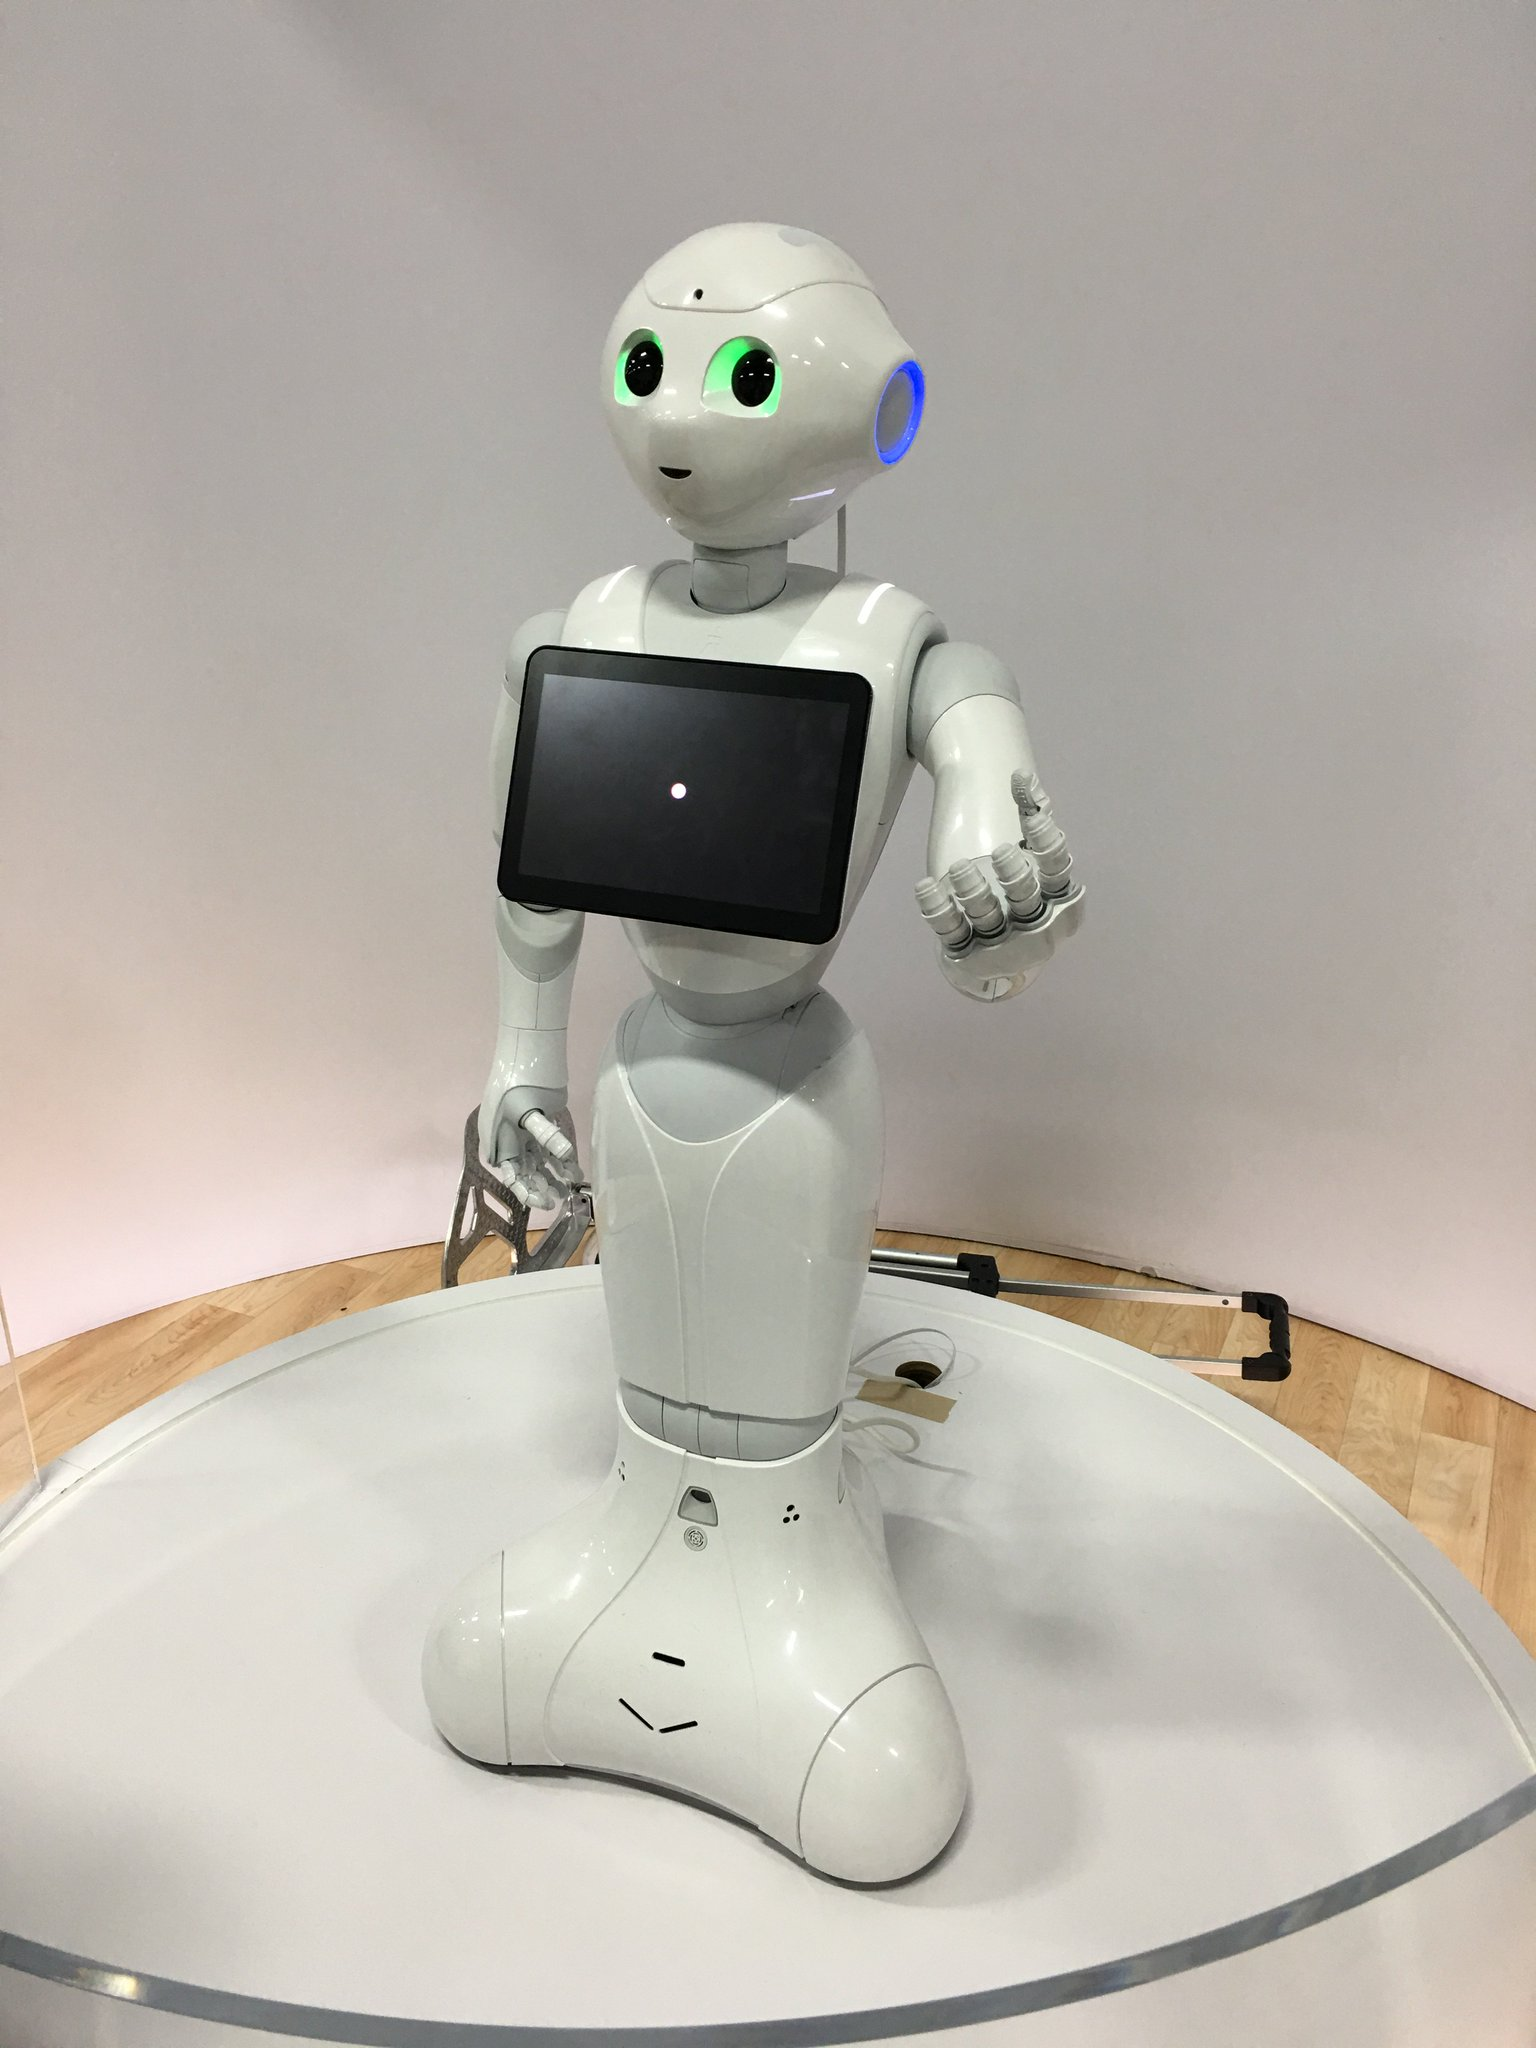 Got to meet #Pepper, IBM's robot that works with @IBMWatson. You can meet her too on the #Cognitive Councourse at #IBMWoW. #WatsonIoT https://t.co/qxLXI8YfXa